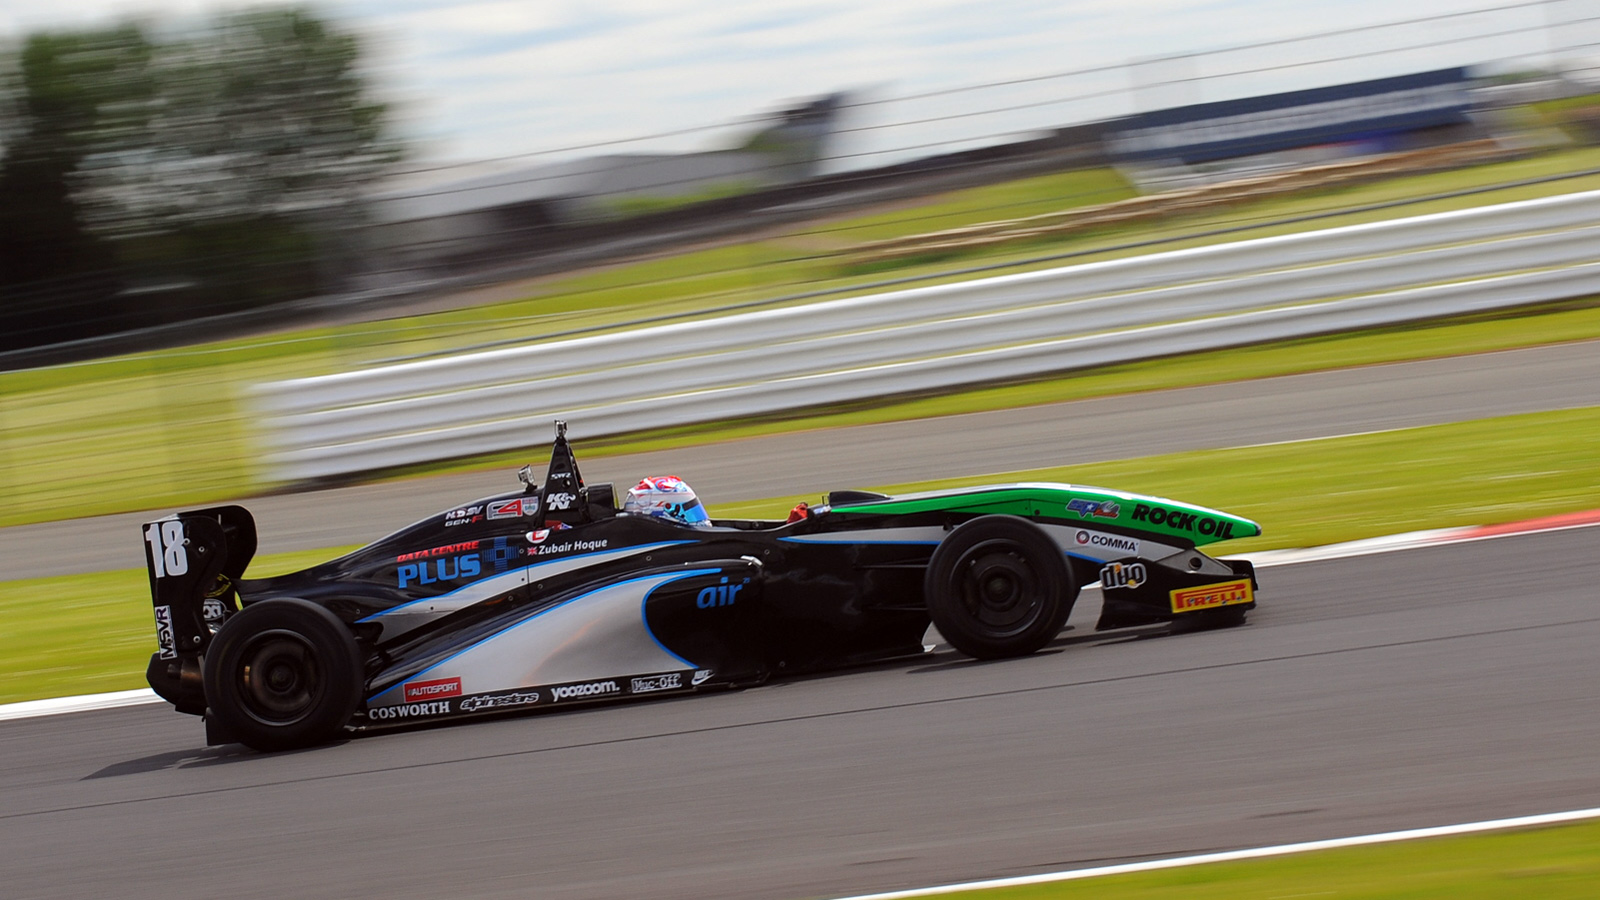 Zubair Hoque has so far enjoyed a strong campaign with his first career podium finish during round six at Rockingham.